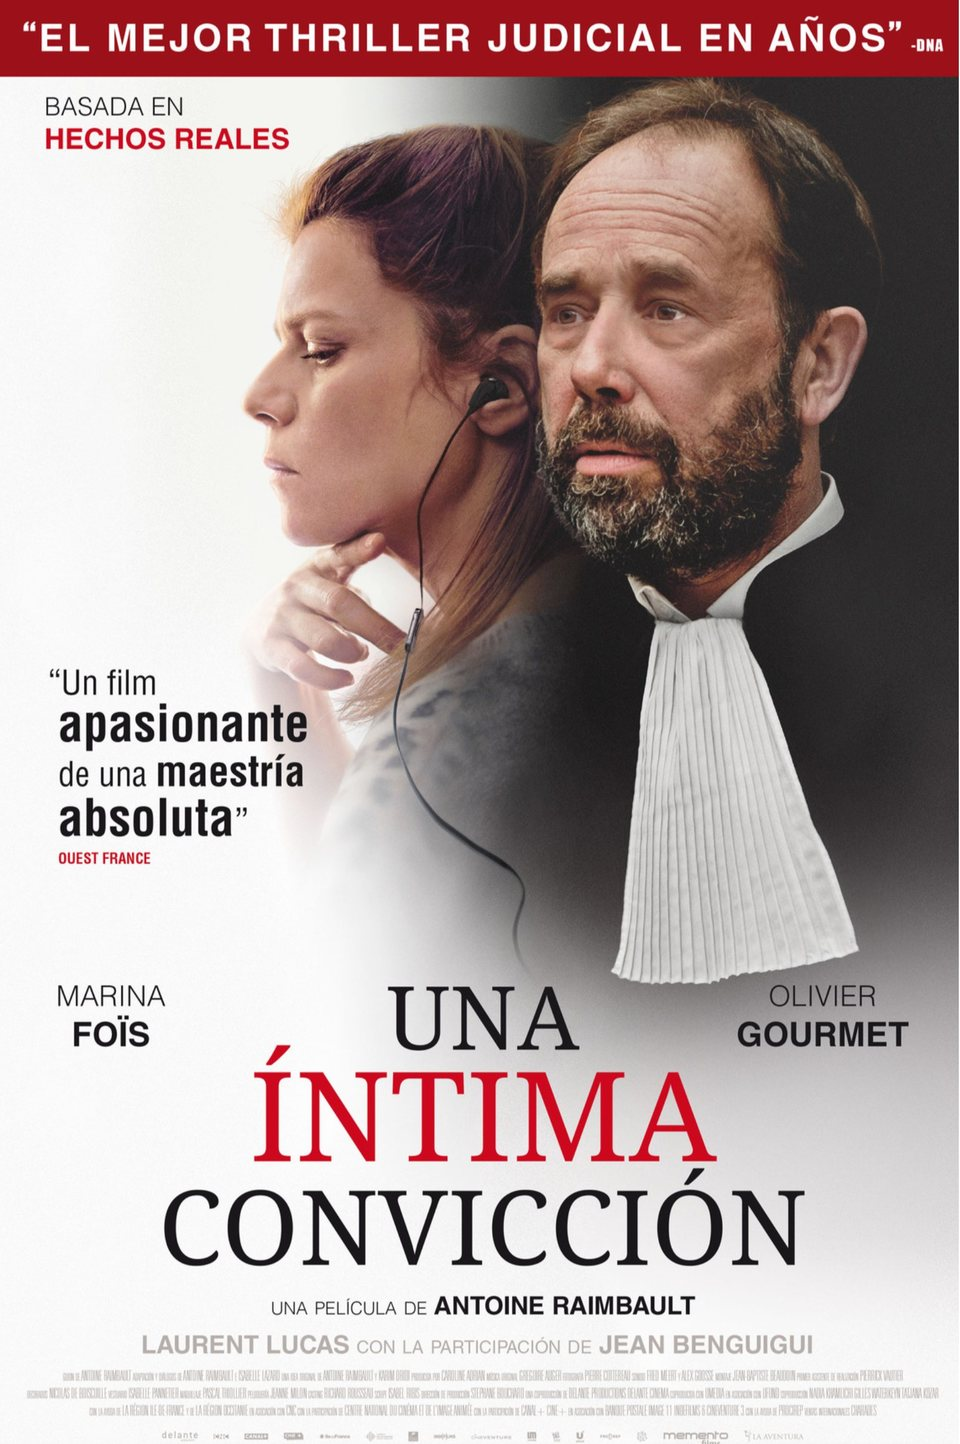 España poster for Conviction